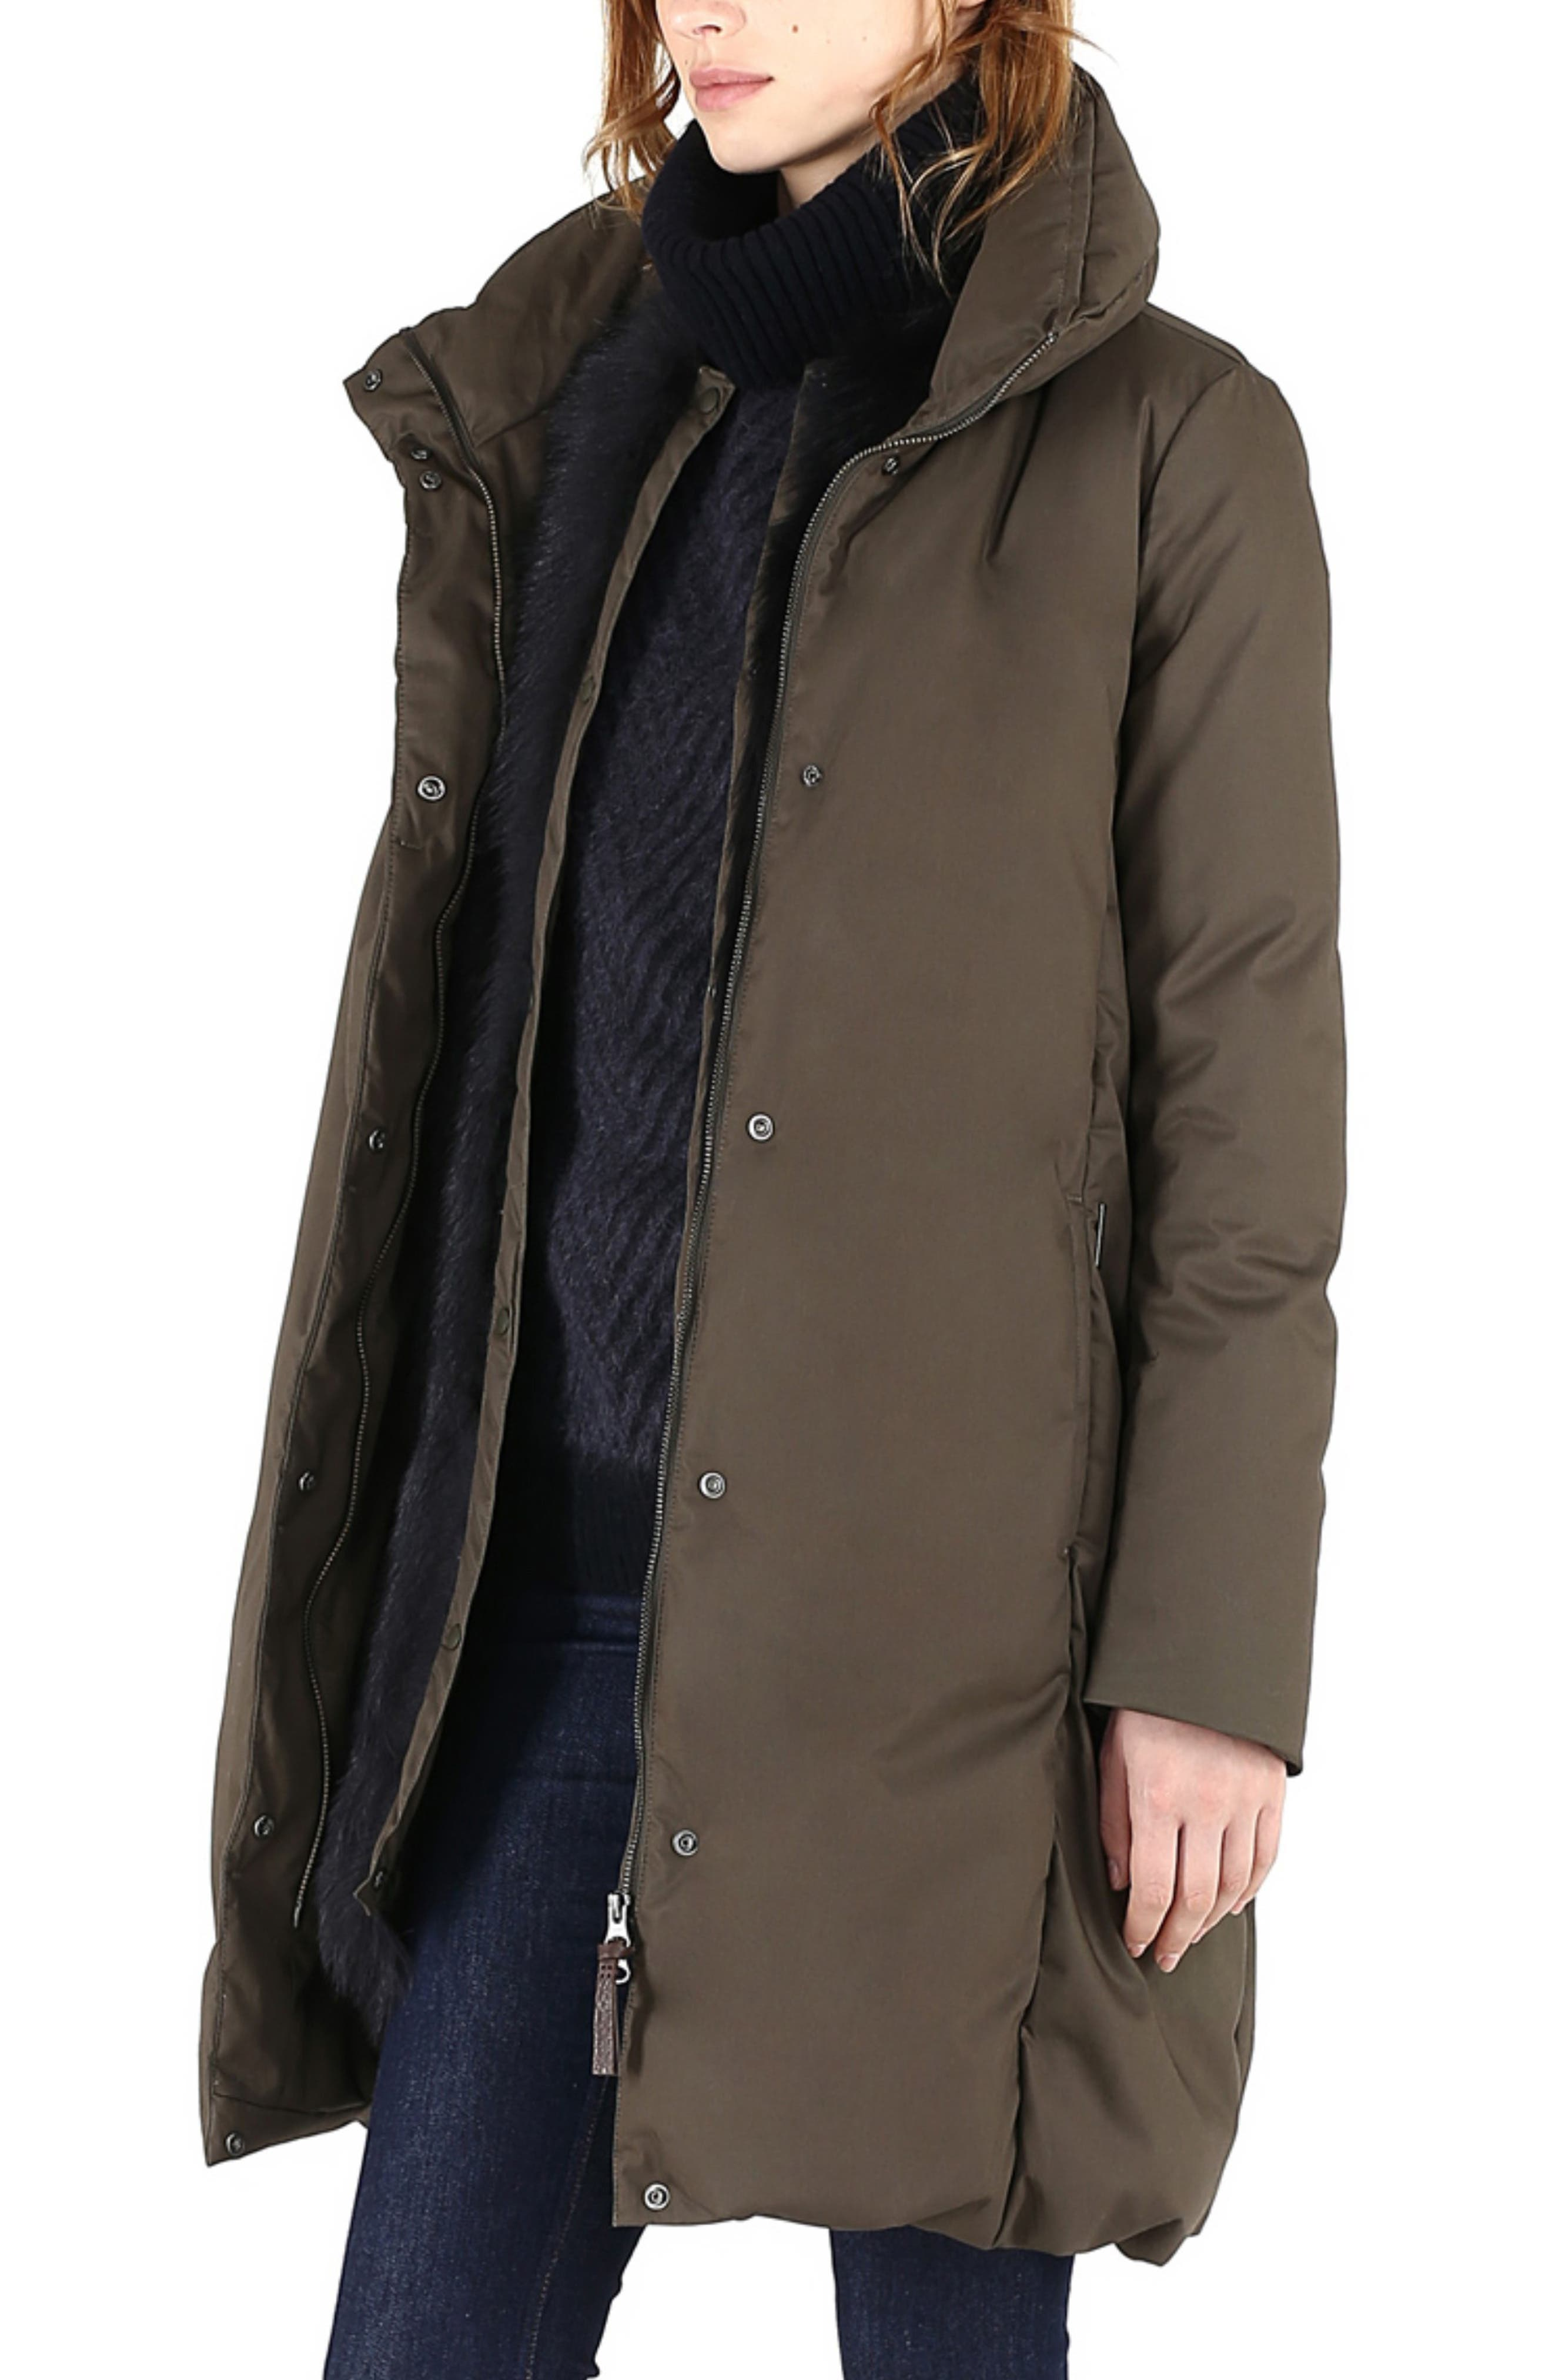 Cocoon Genuine Shearling Lined Down Coat,                             Alternate thumbnail 3, color,                             MILITARY OLIVE